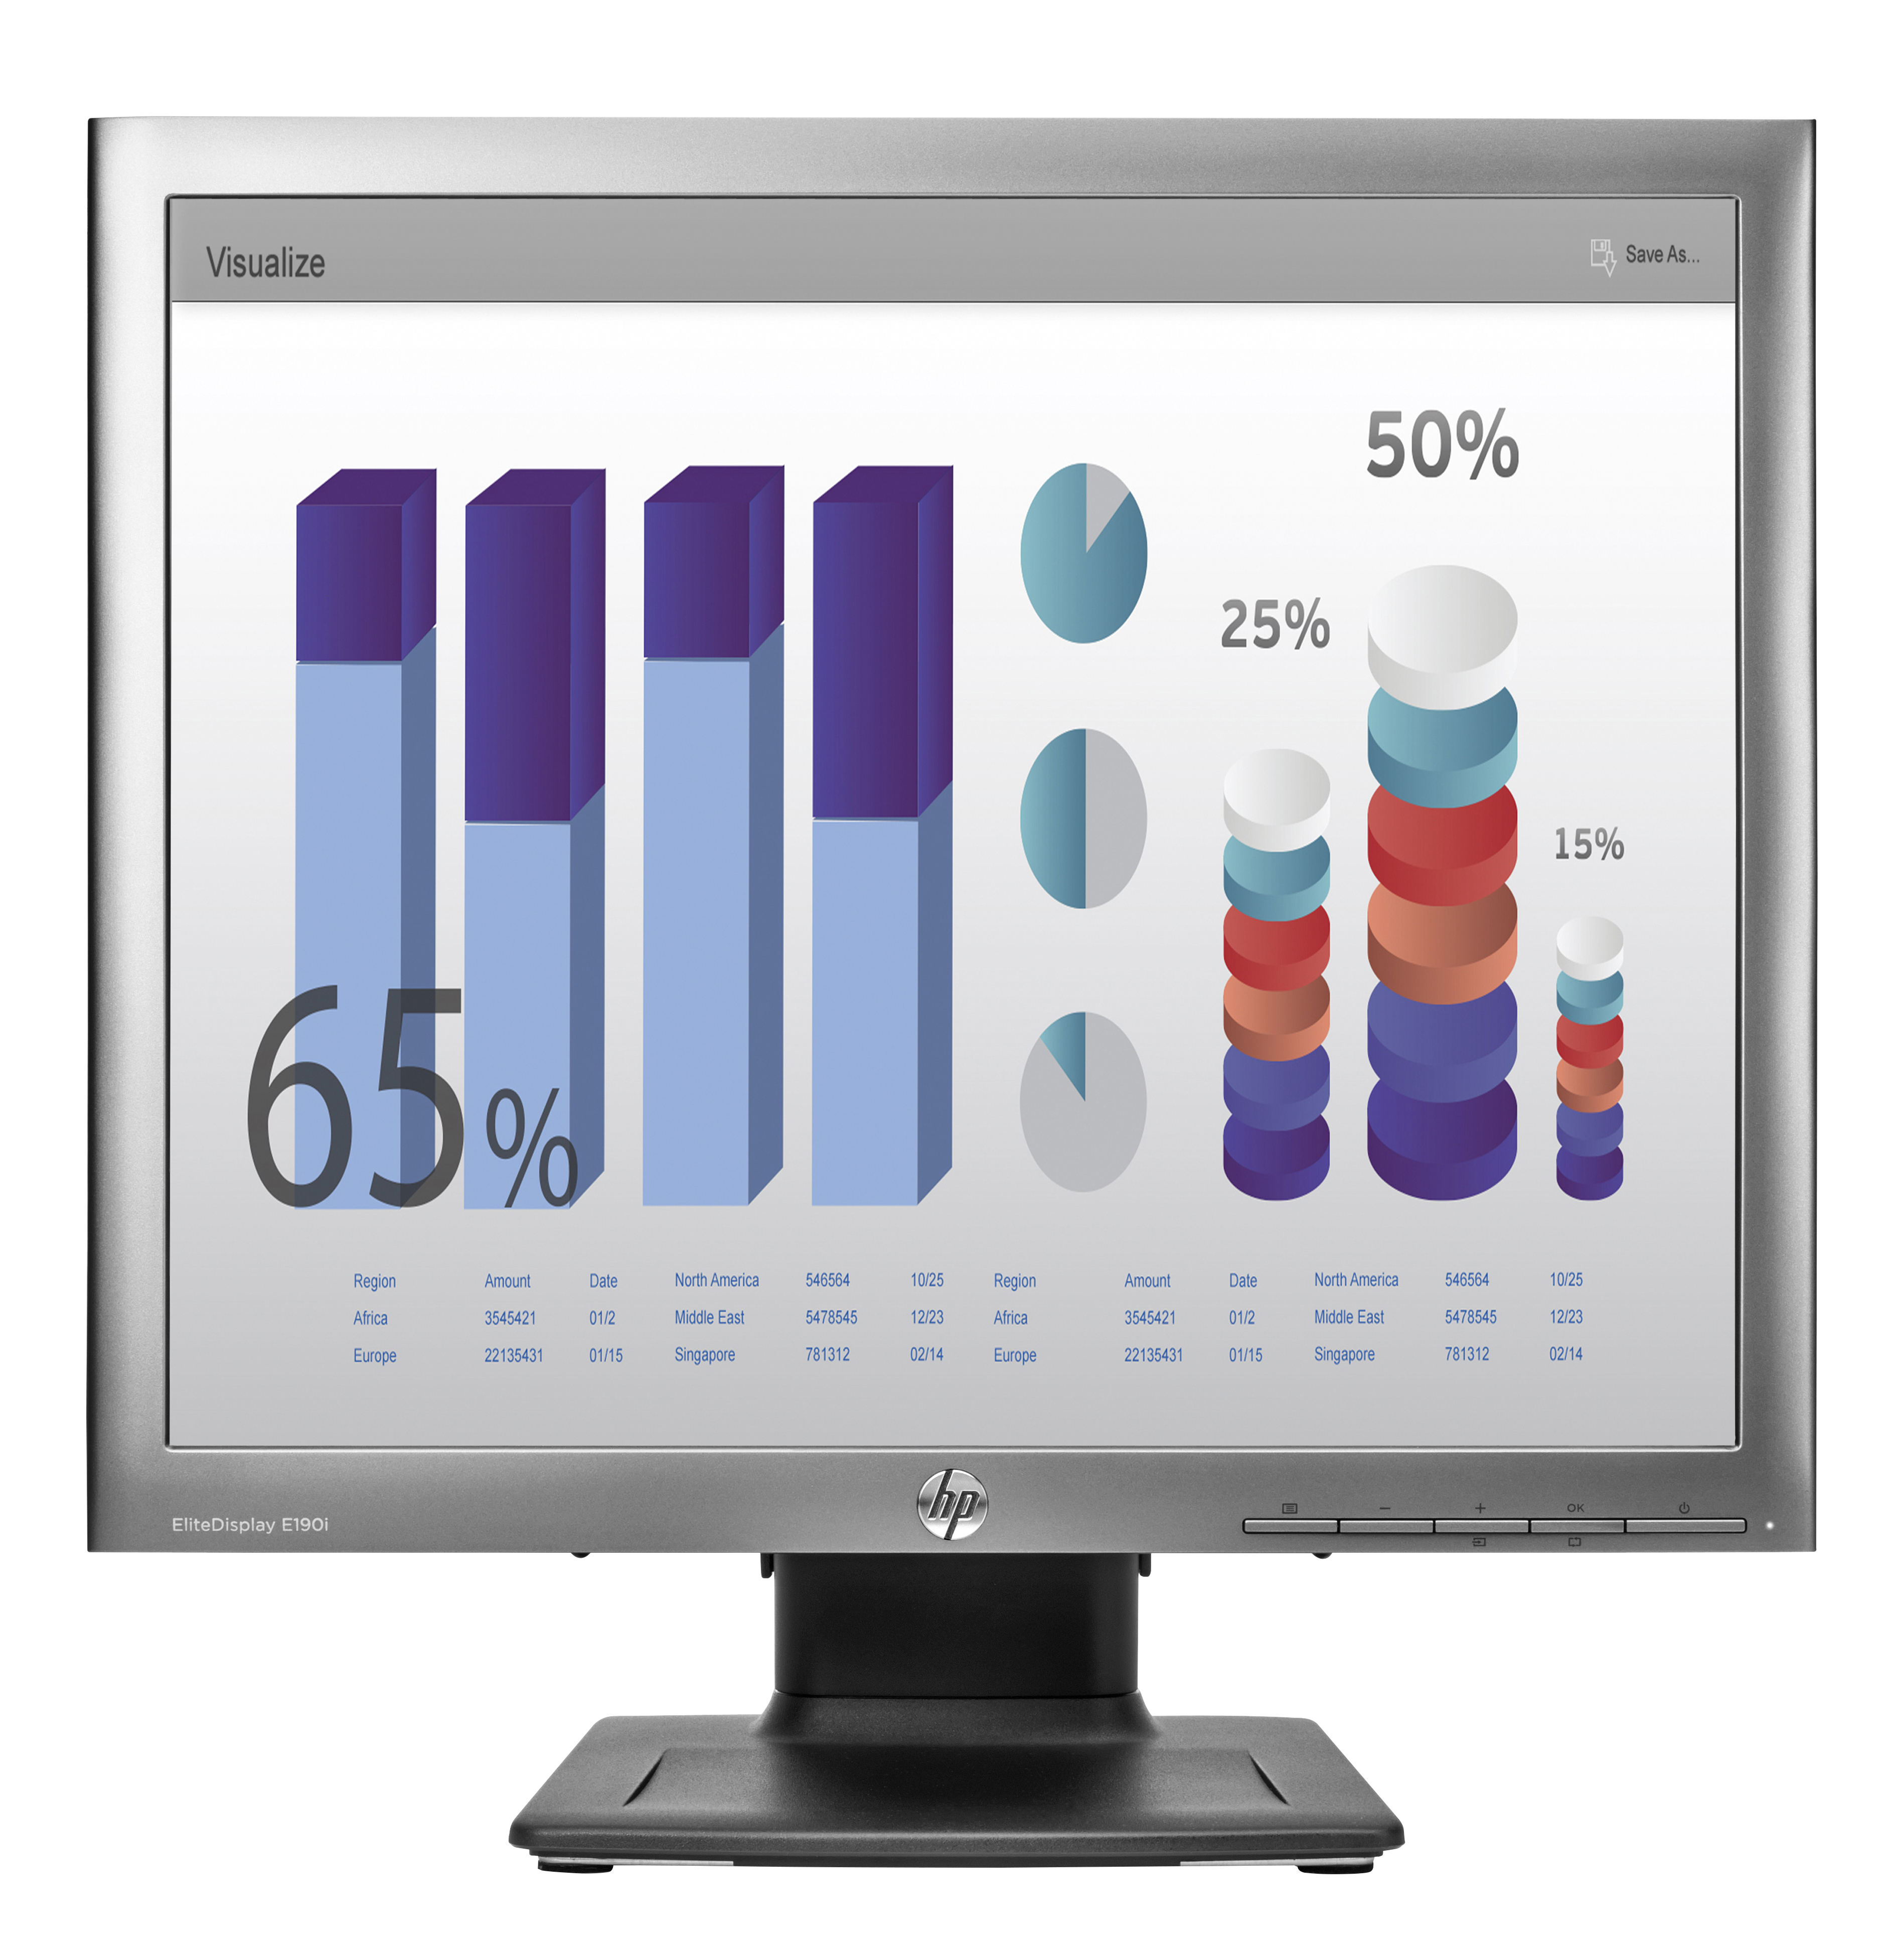 HP EliteDisplay E190i LED Monitor United Kingdom E4U30AT#ABU - C2000